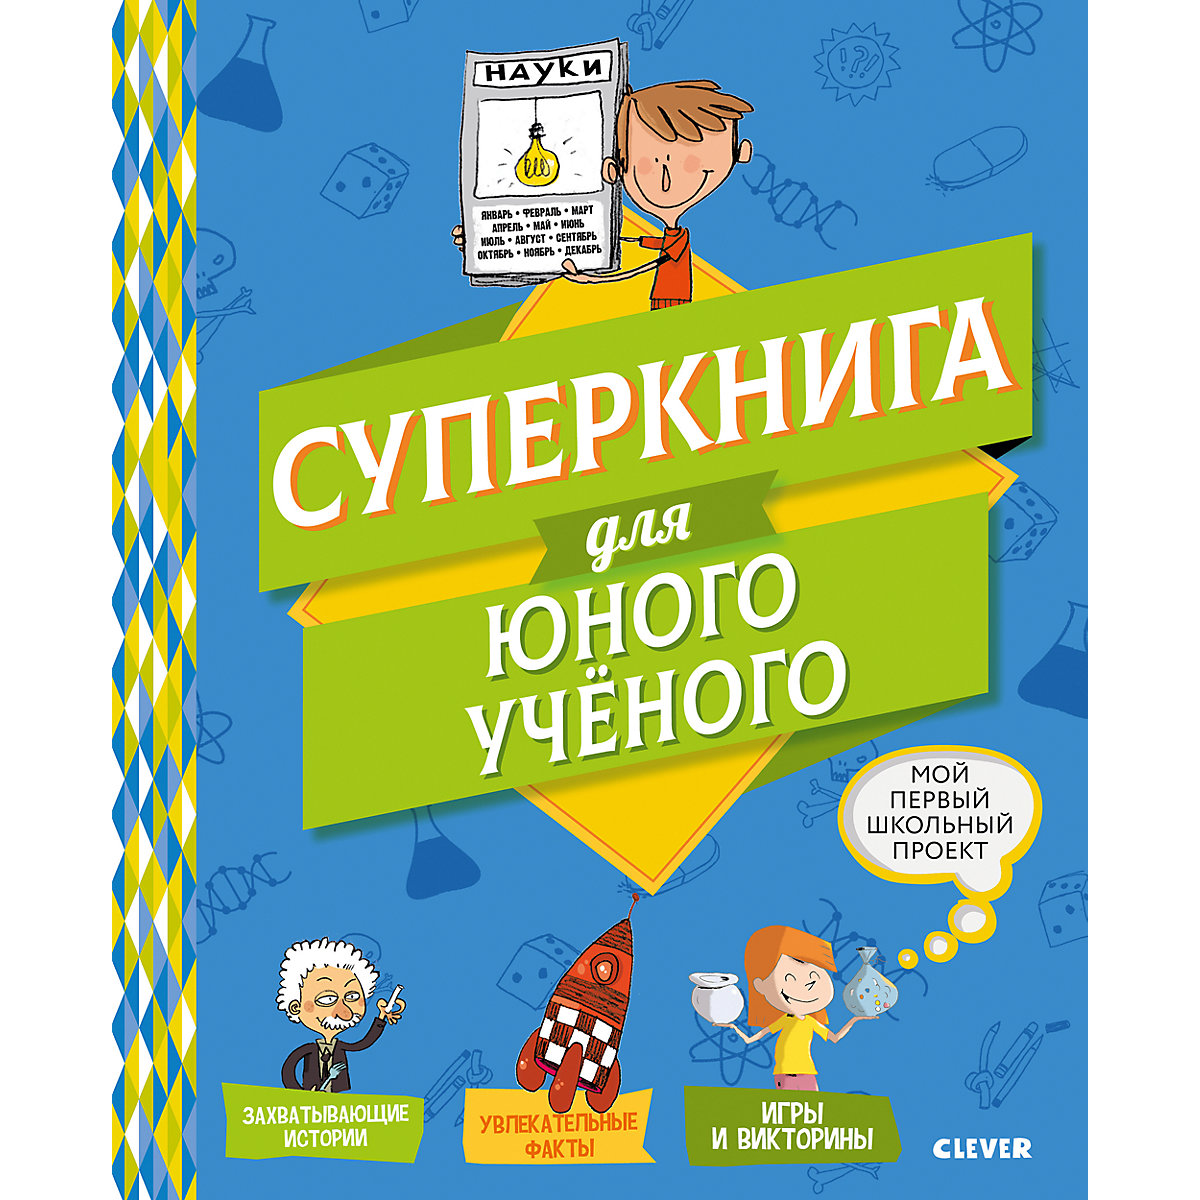 Books CLEVER 10078083 Children Education Encyclopedia Alphabet Dictionary Book For Baby